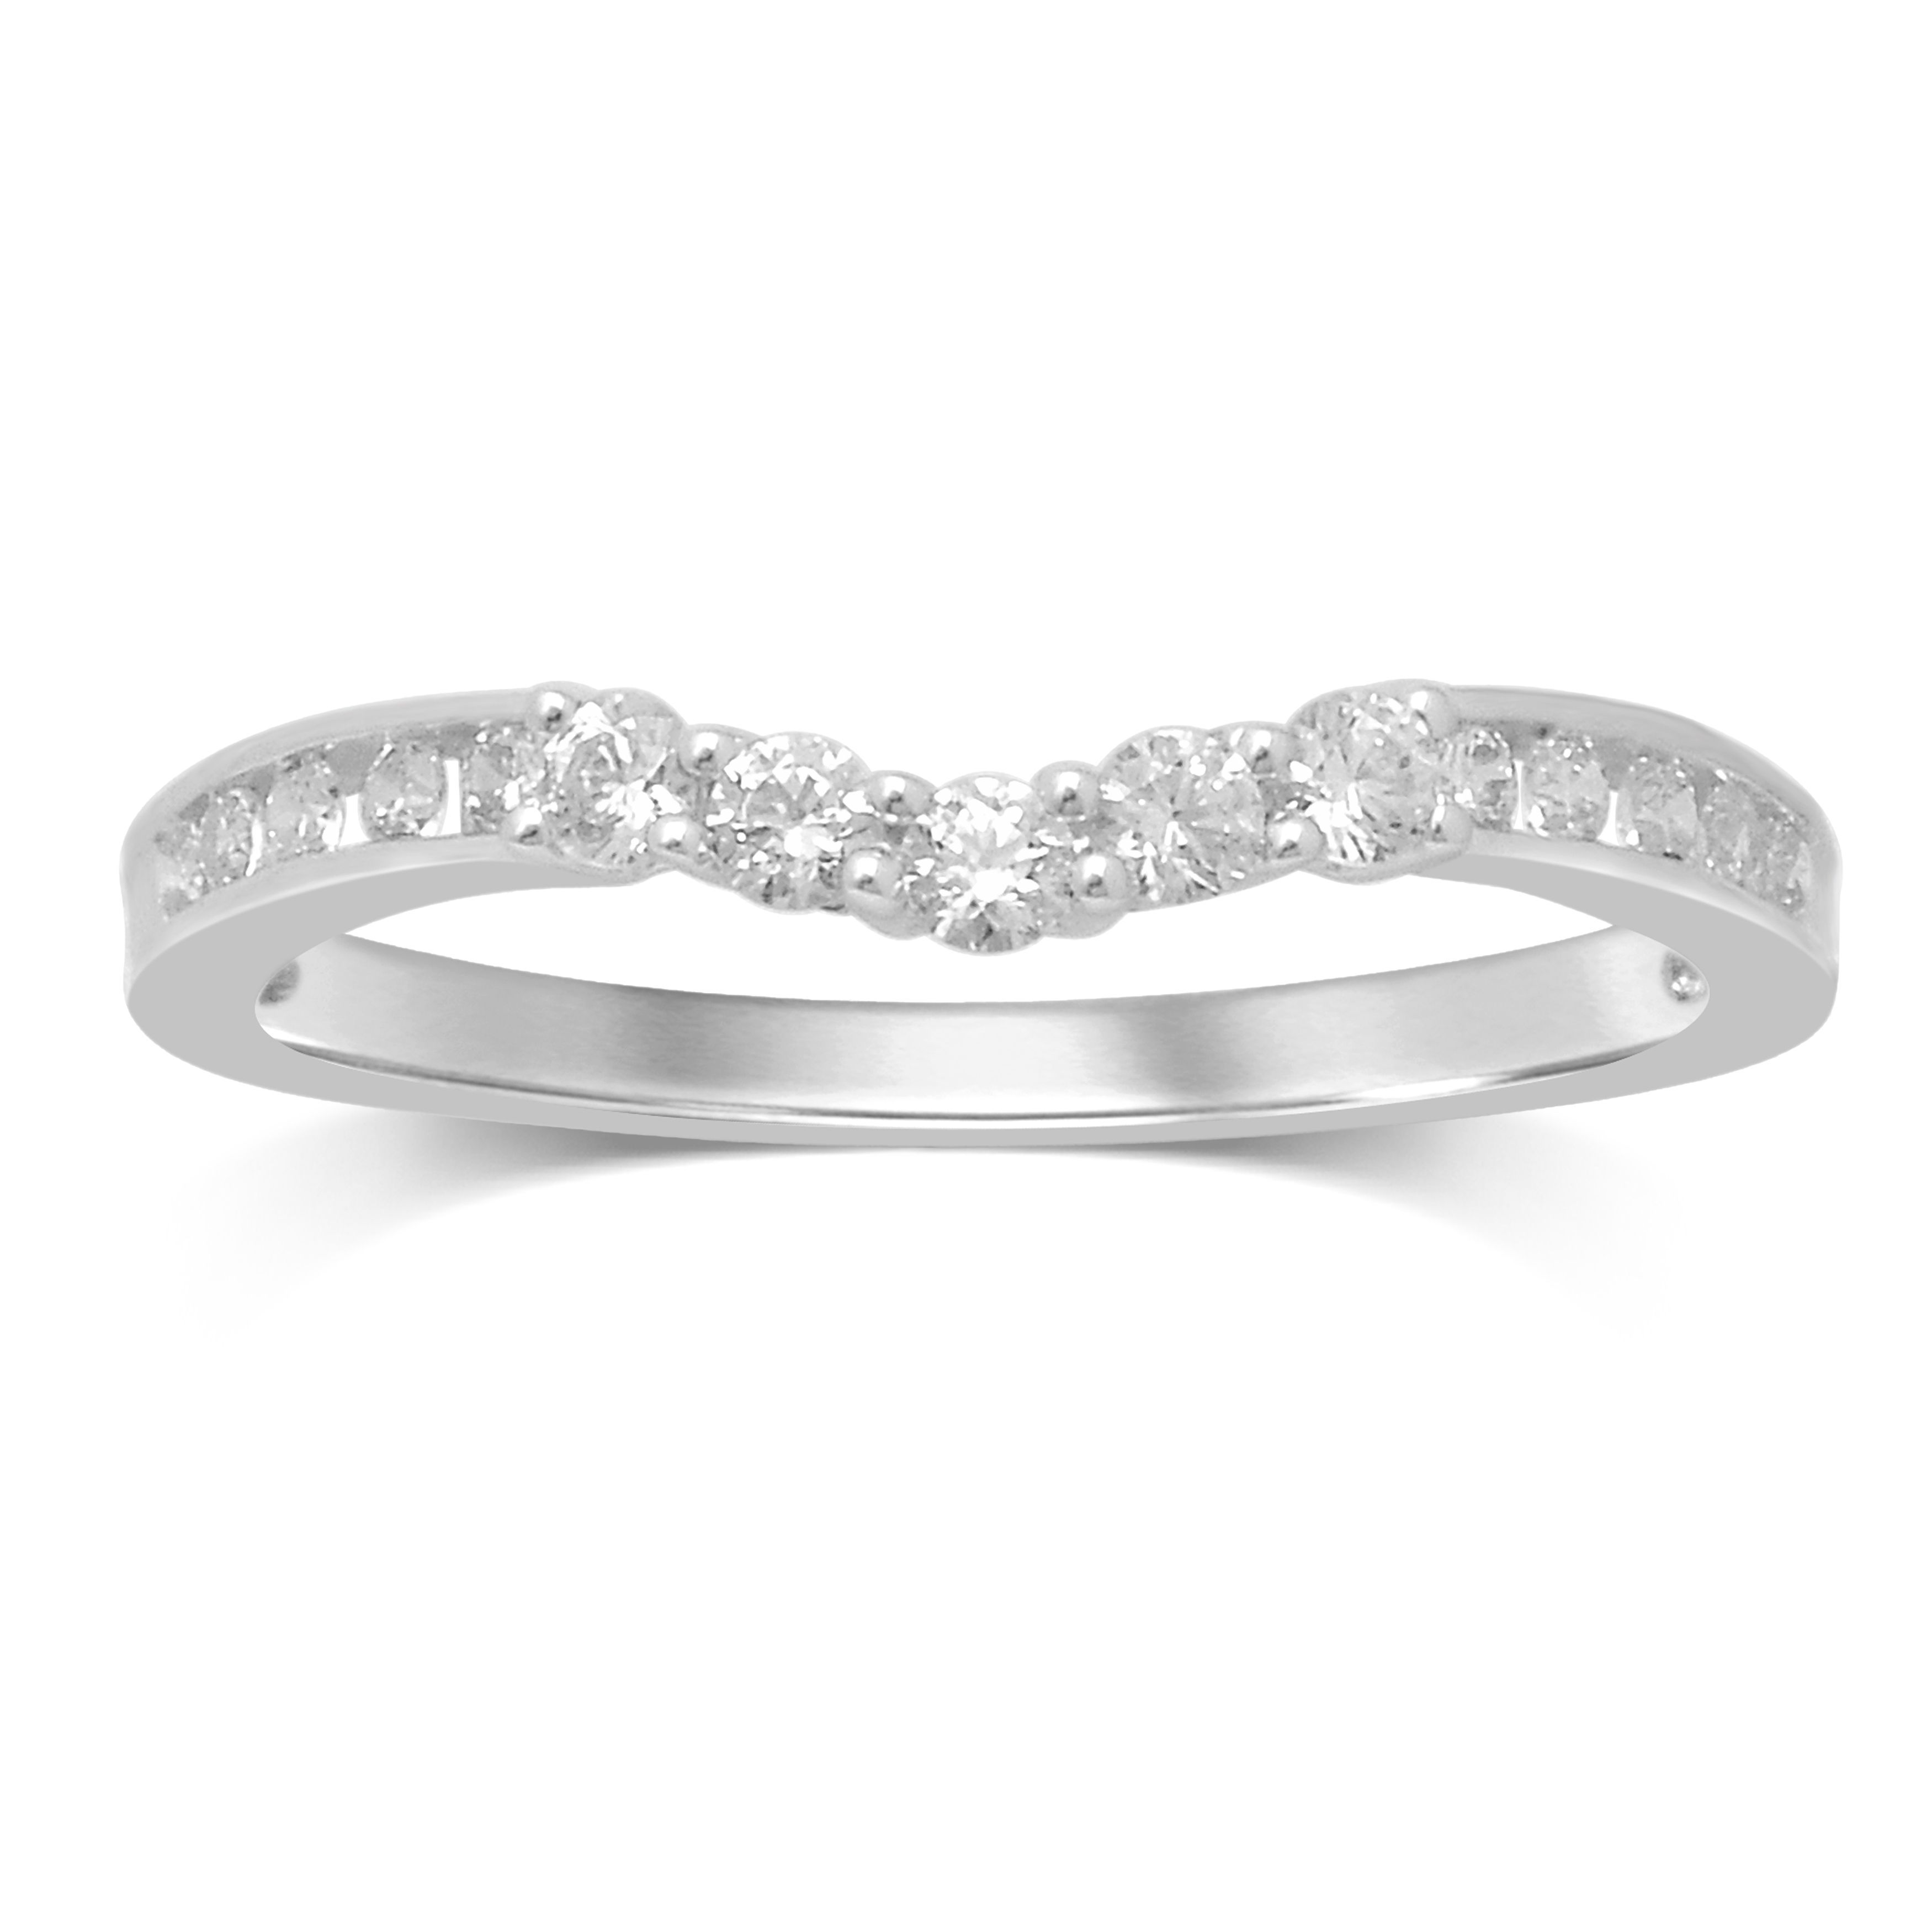 Match The Luxurious Look Of Her Engagement Ring With Thisplementary Wedding  Band Featuring Several Round